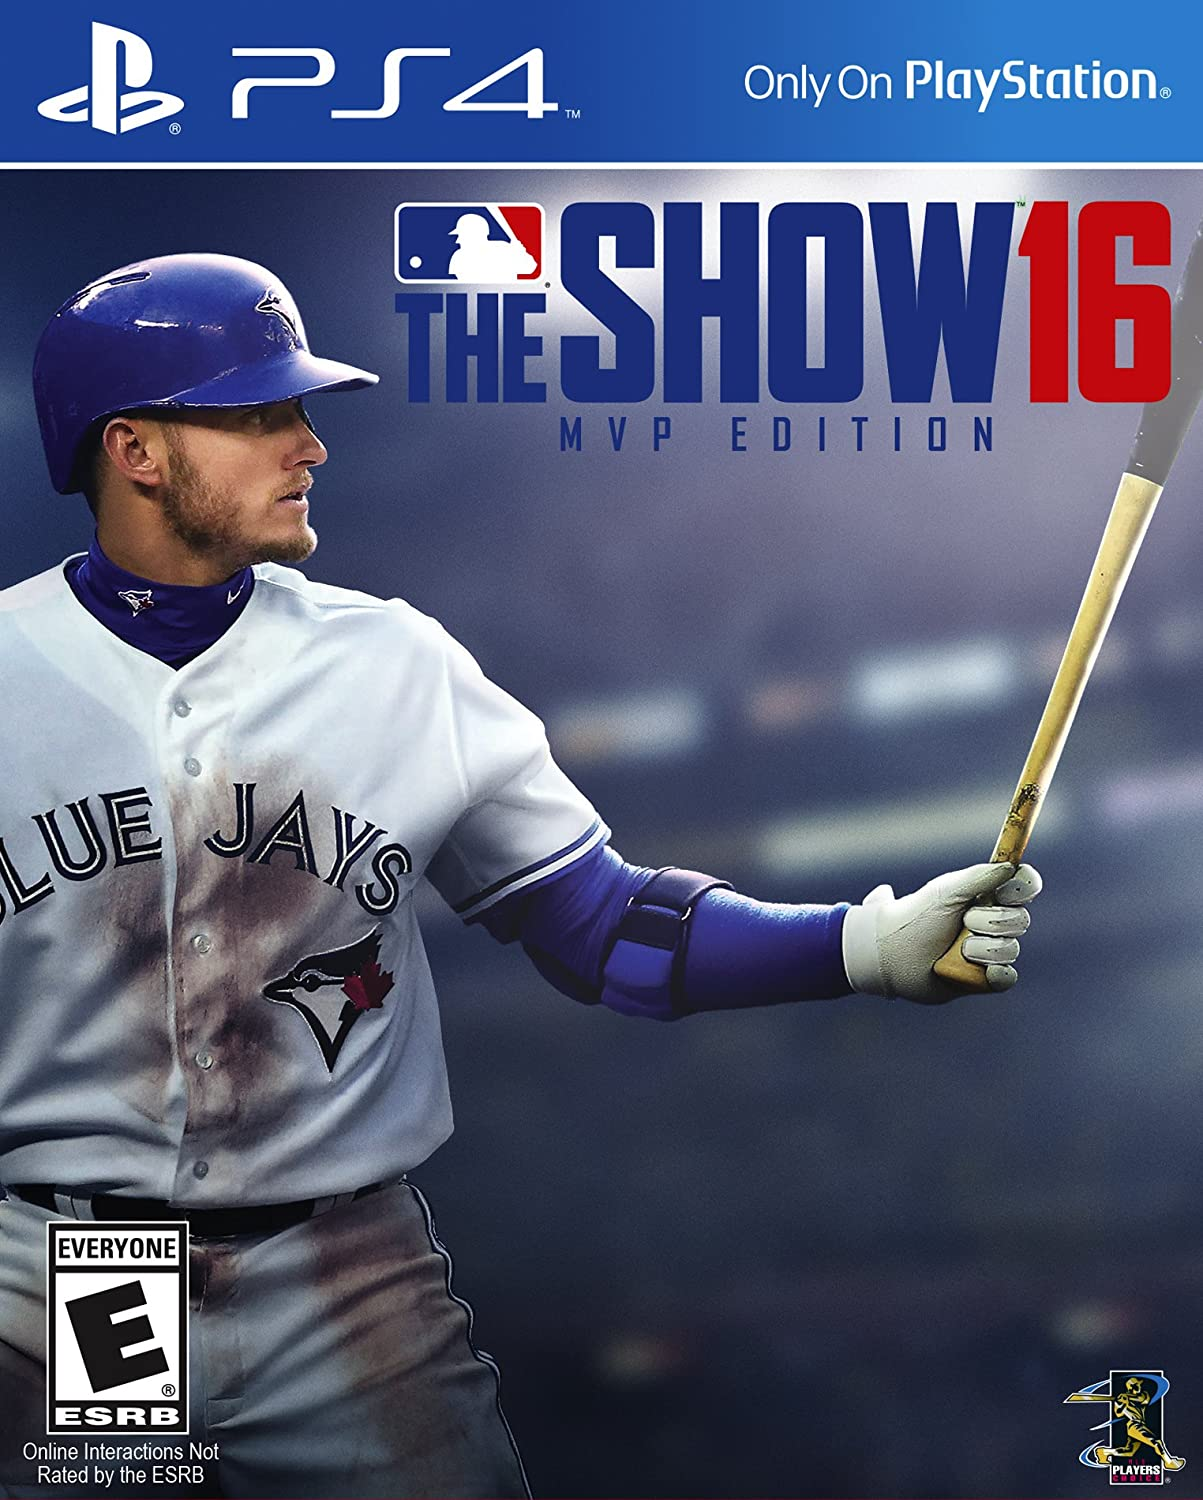 MLB The Show 16 - MVP Edition - PS4 (Digital Code)